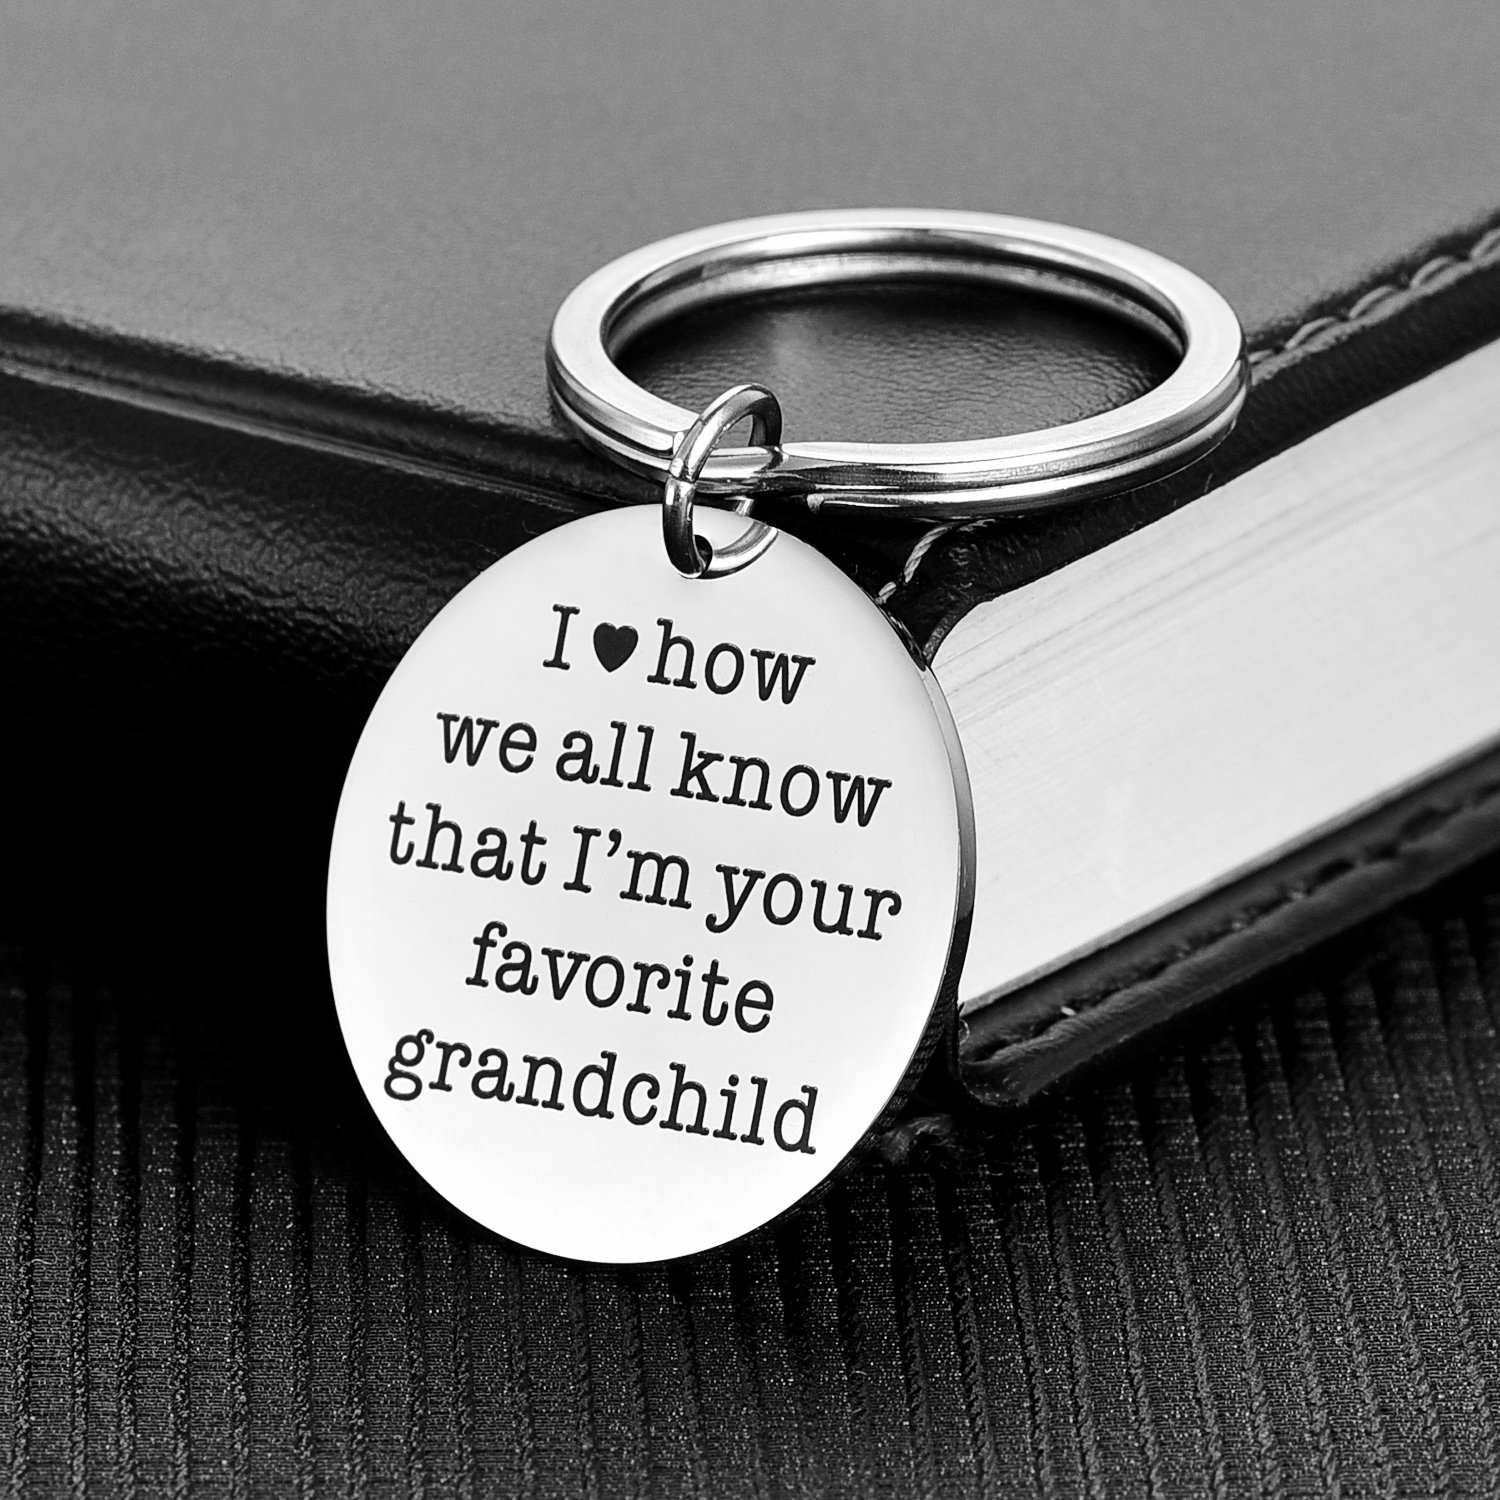 Alxeani Funny Father's Day Gifts for Grandpa - I'm Your Favorite Grandchild Keychain, Best Birthday Gift for Grandfather Grandmother from Grandson or Graddaughter, Mother's Day Keychain for Grandma by Alxeani (Image #2)